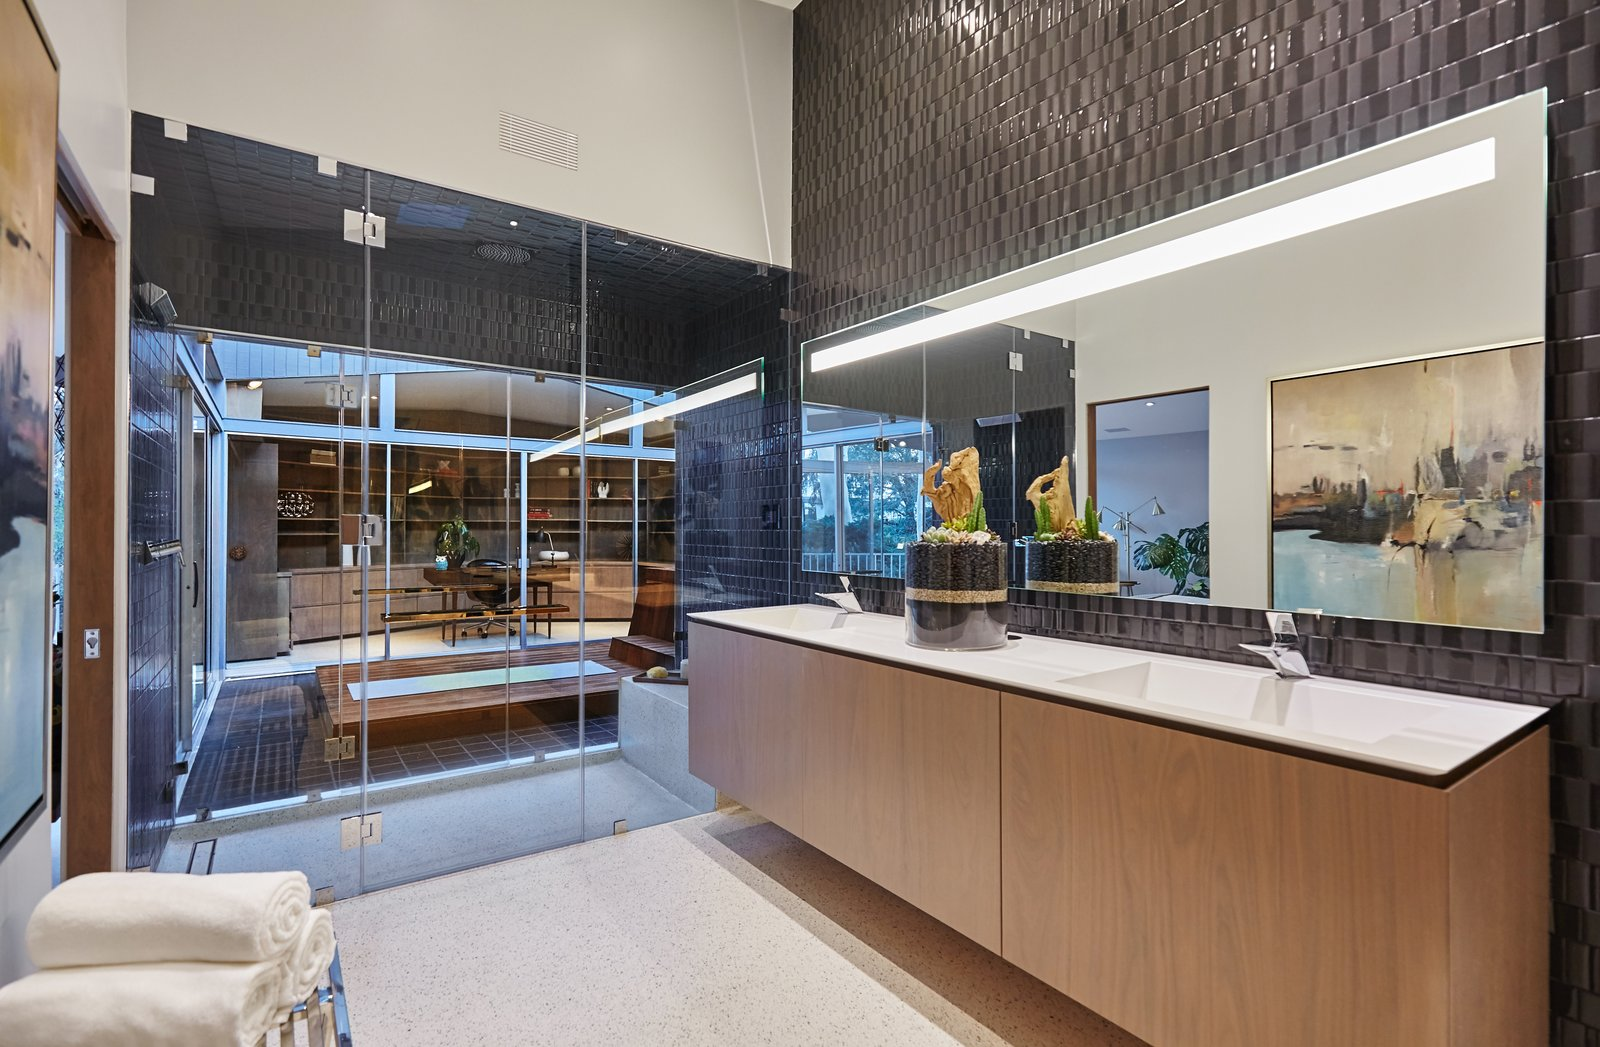 Bath Room, Soaking Tub, Terrazzo Floor, Ceramic Tile Wall, and Drop In Sink  Photo 9 of 10 in A Hexagonal Midcentury Residence in Southern California Offered at $2.89M